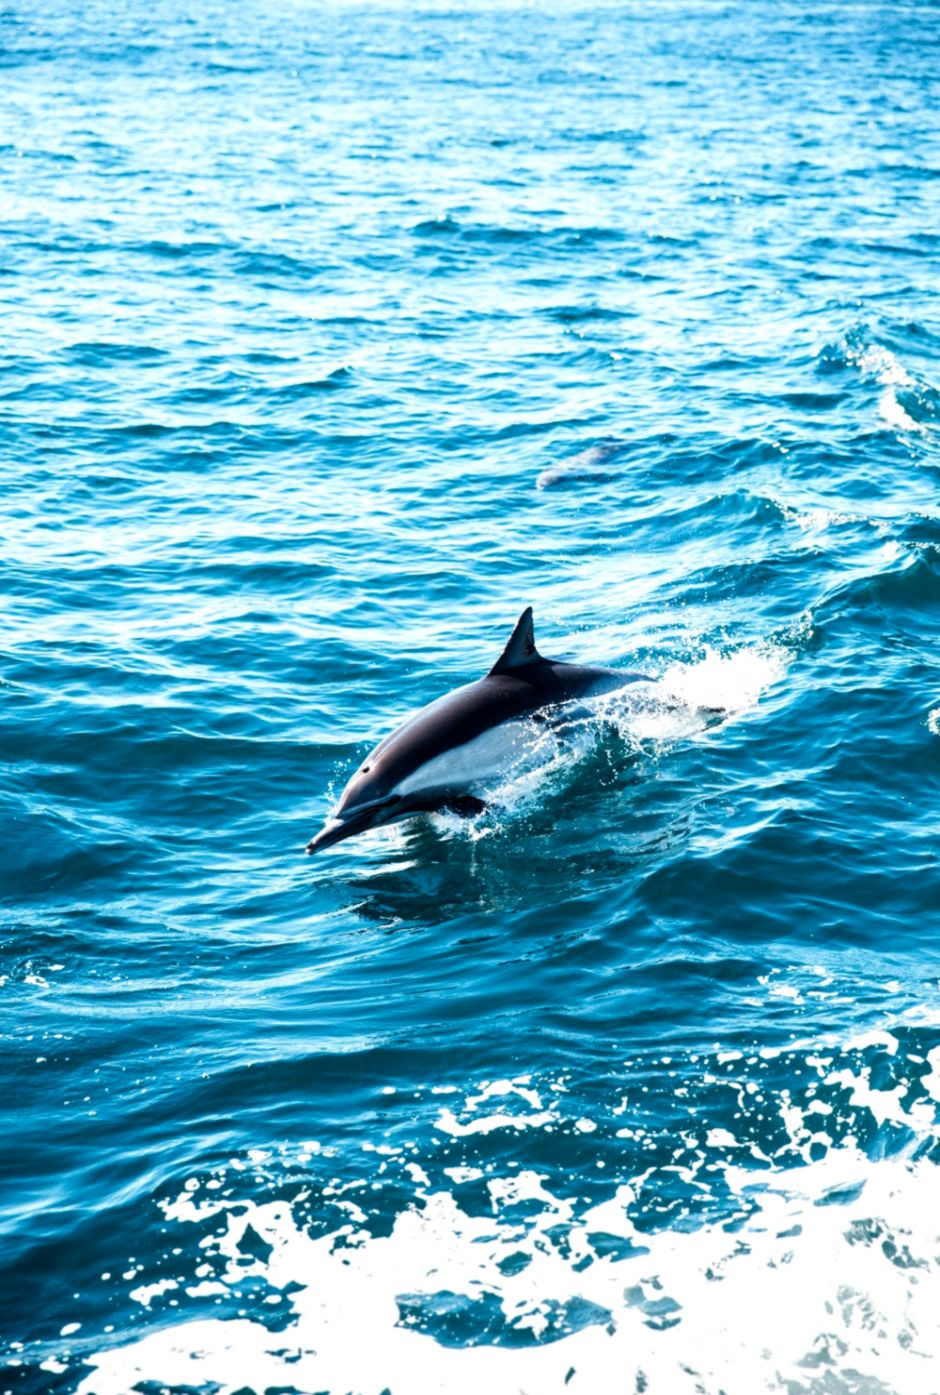 20 Dolphin Pictures Download Free Images on Unsplash